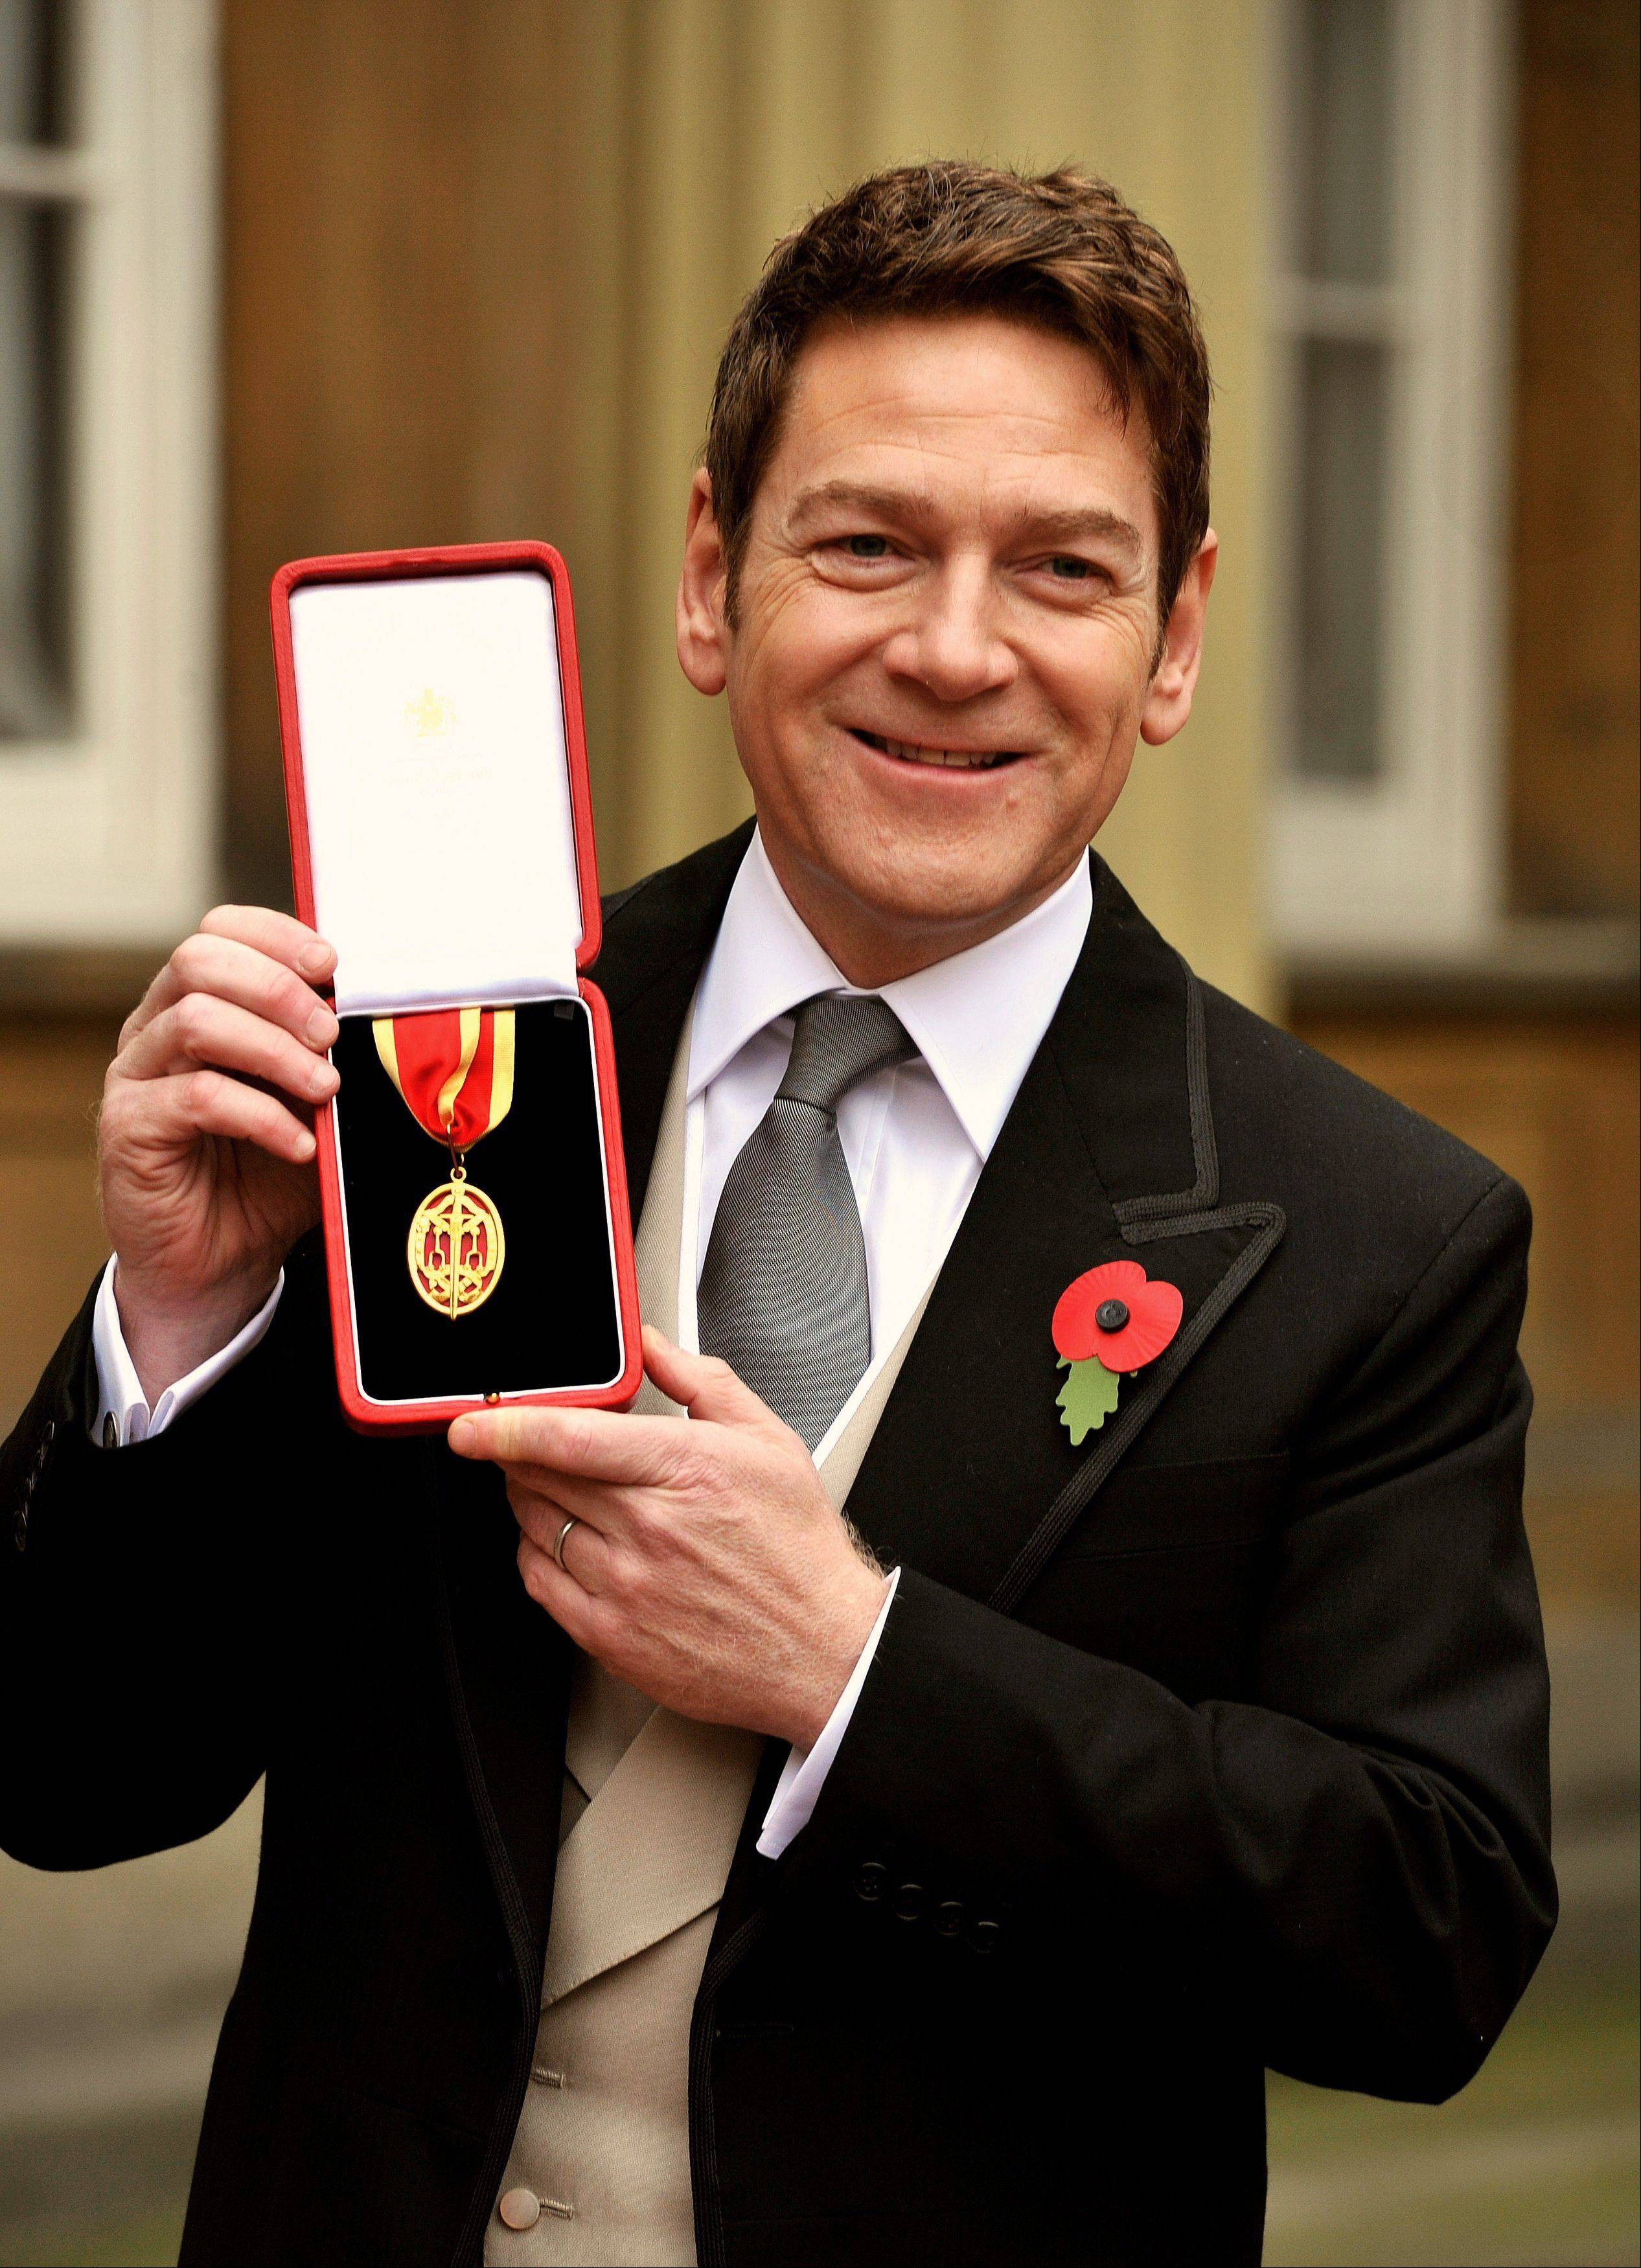 British actor Kenneth Branagh poses with his award after receiving a knighthood from Britain's Queen Elizabeth II at an investiture ceremony at Buckingham Palace in London Friday.